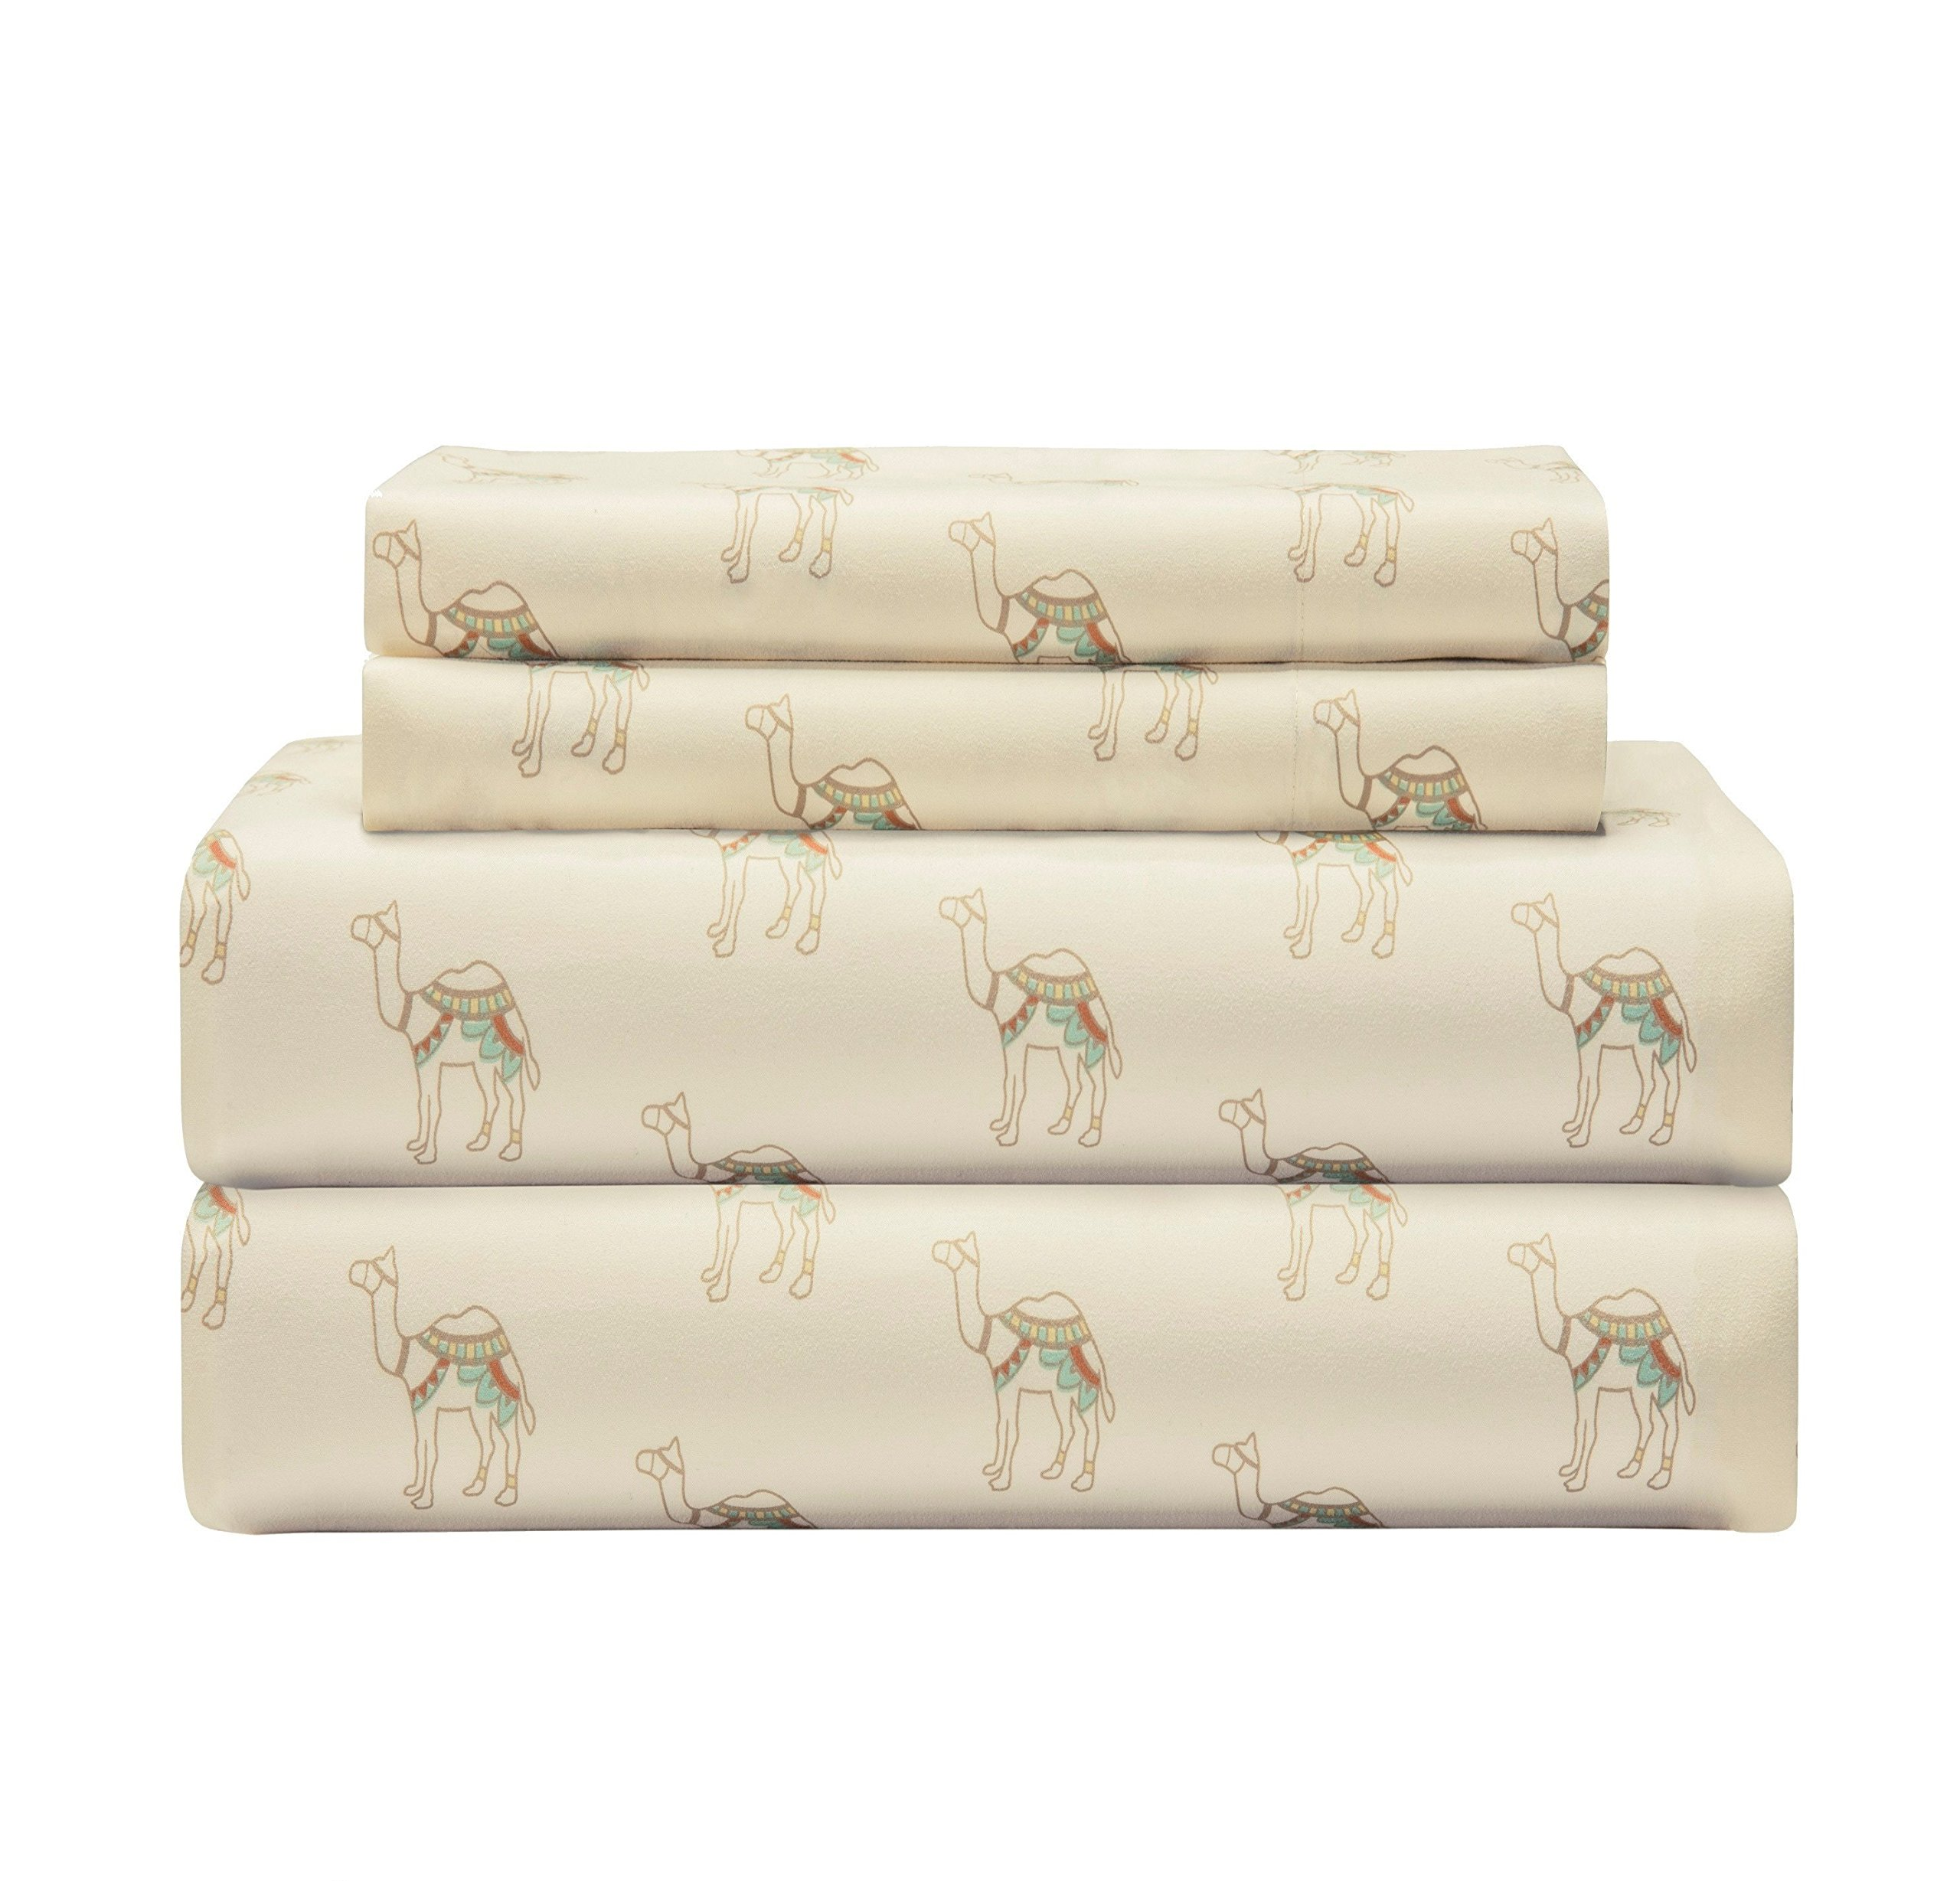 3 Piece Girls Camels Beige Brown Sheet Twin Xl Set, Light Brown Color Animal Print Boho Printed Kids Bedding Teen Bedroom, Whimsical Design Contemporary Zoo Desert Animals, Polyester